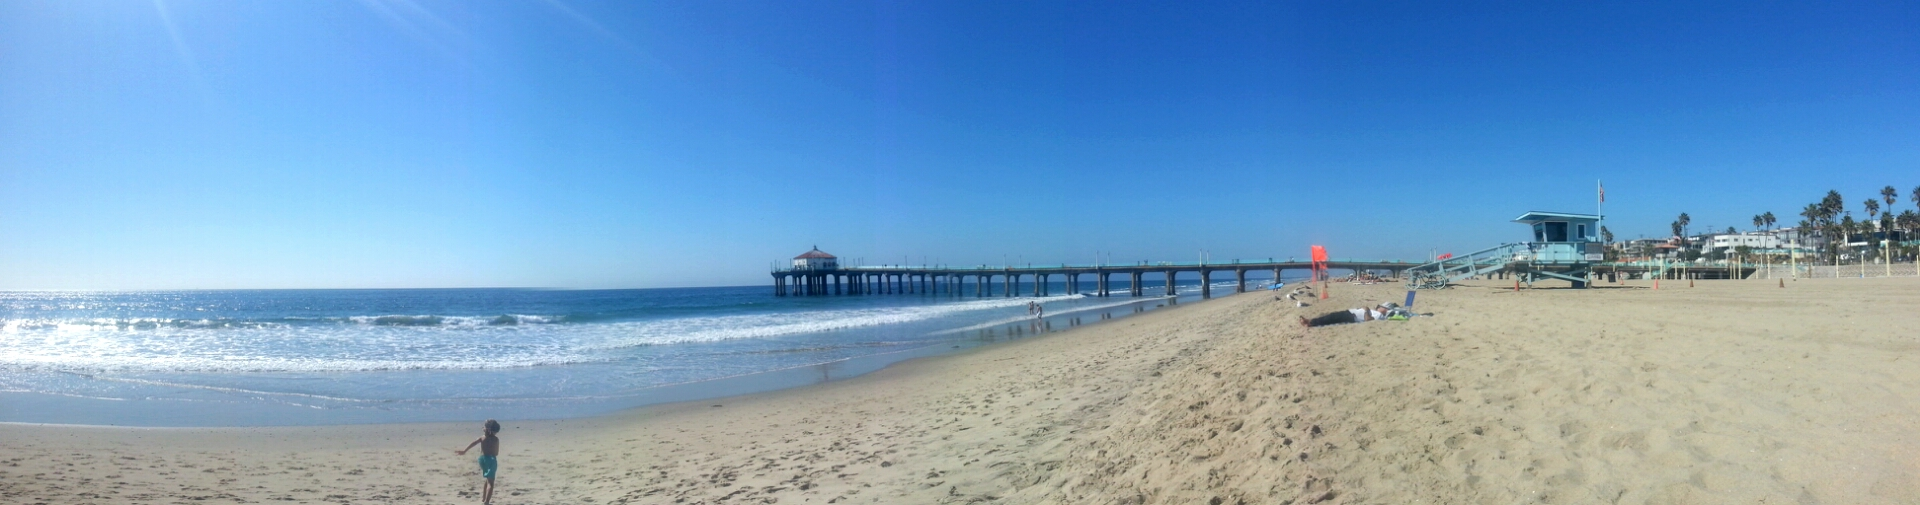 USA, Kalifornia, Manhattan Beach